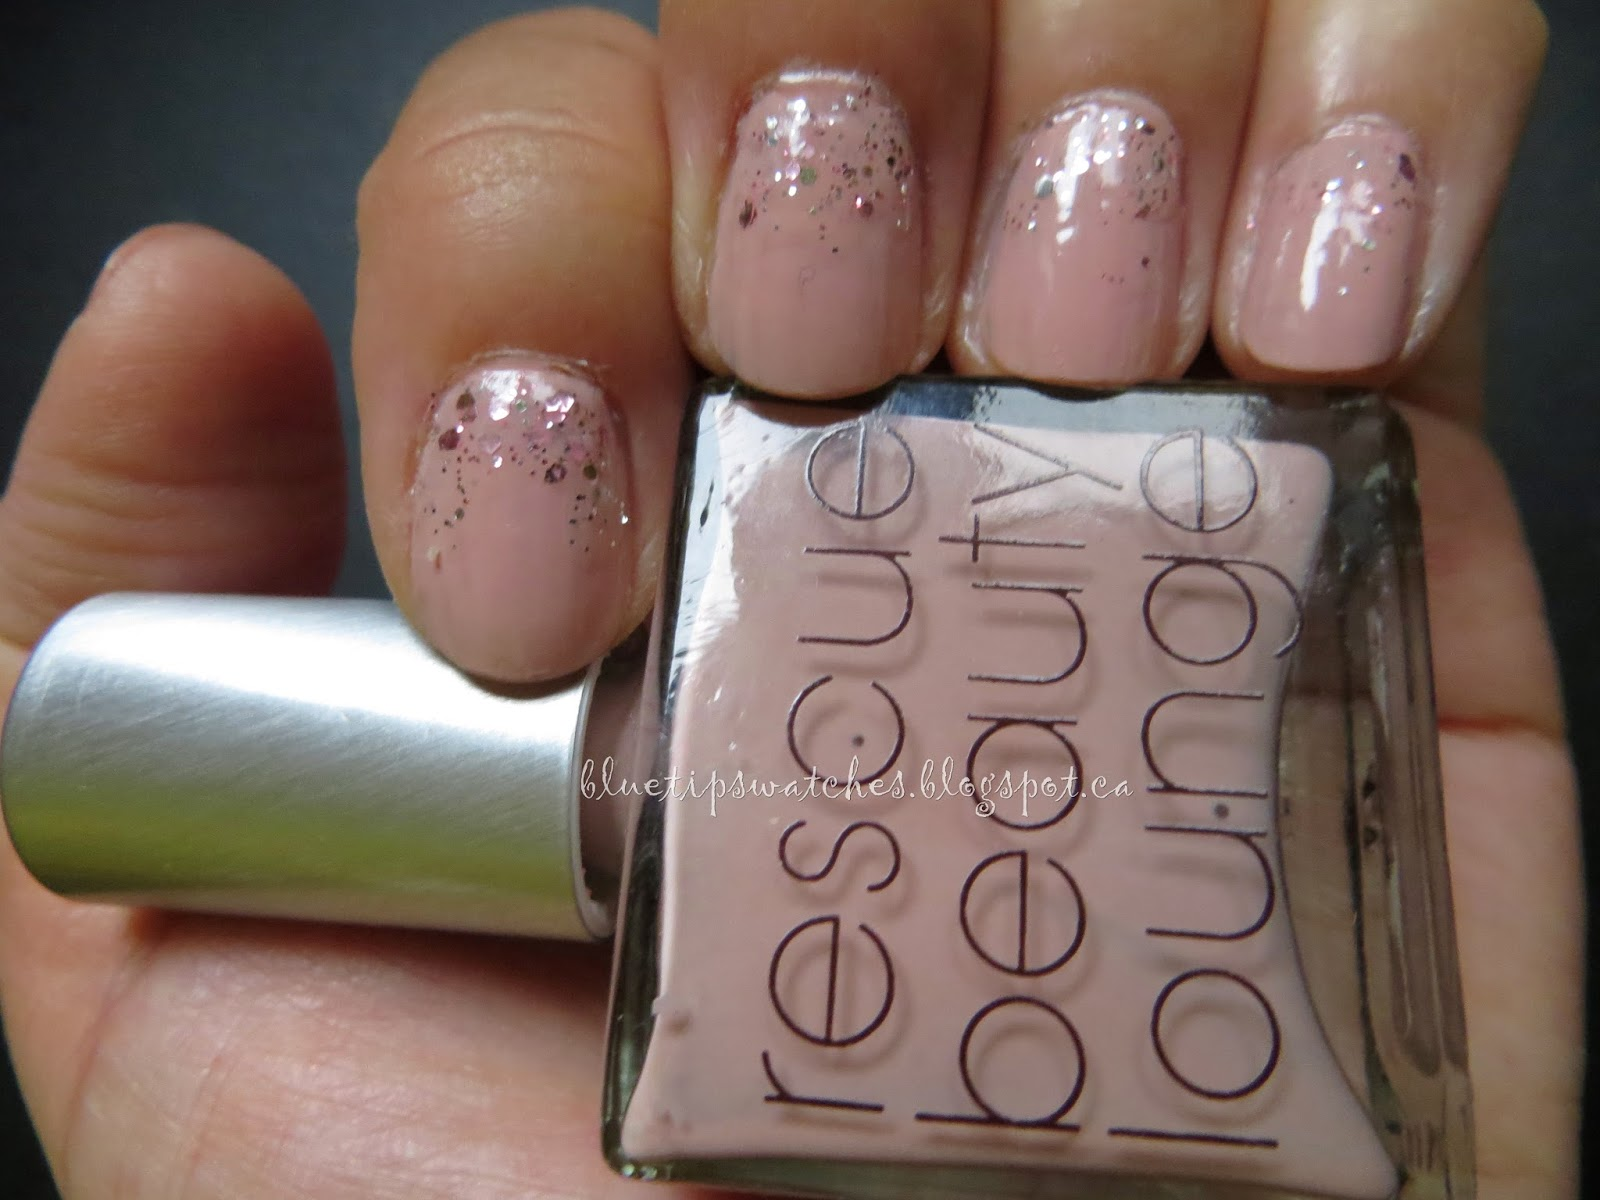 Blue Tip Swatches Nail Design Rescue Beauty Lounge Plie And